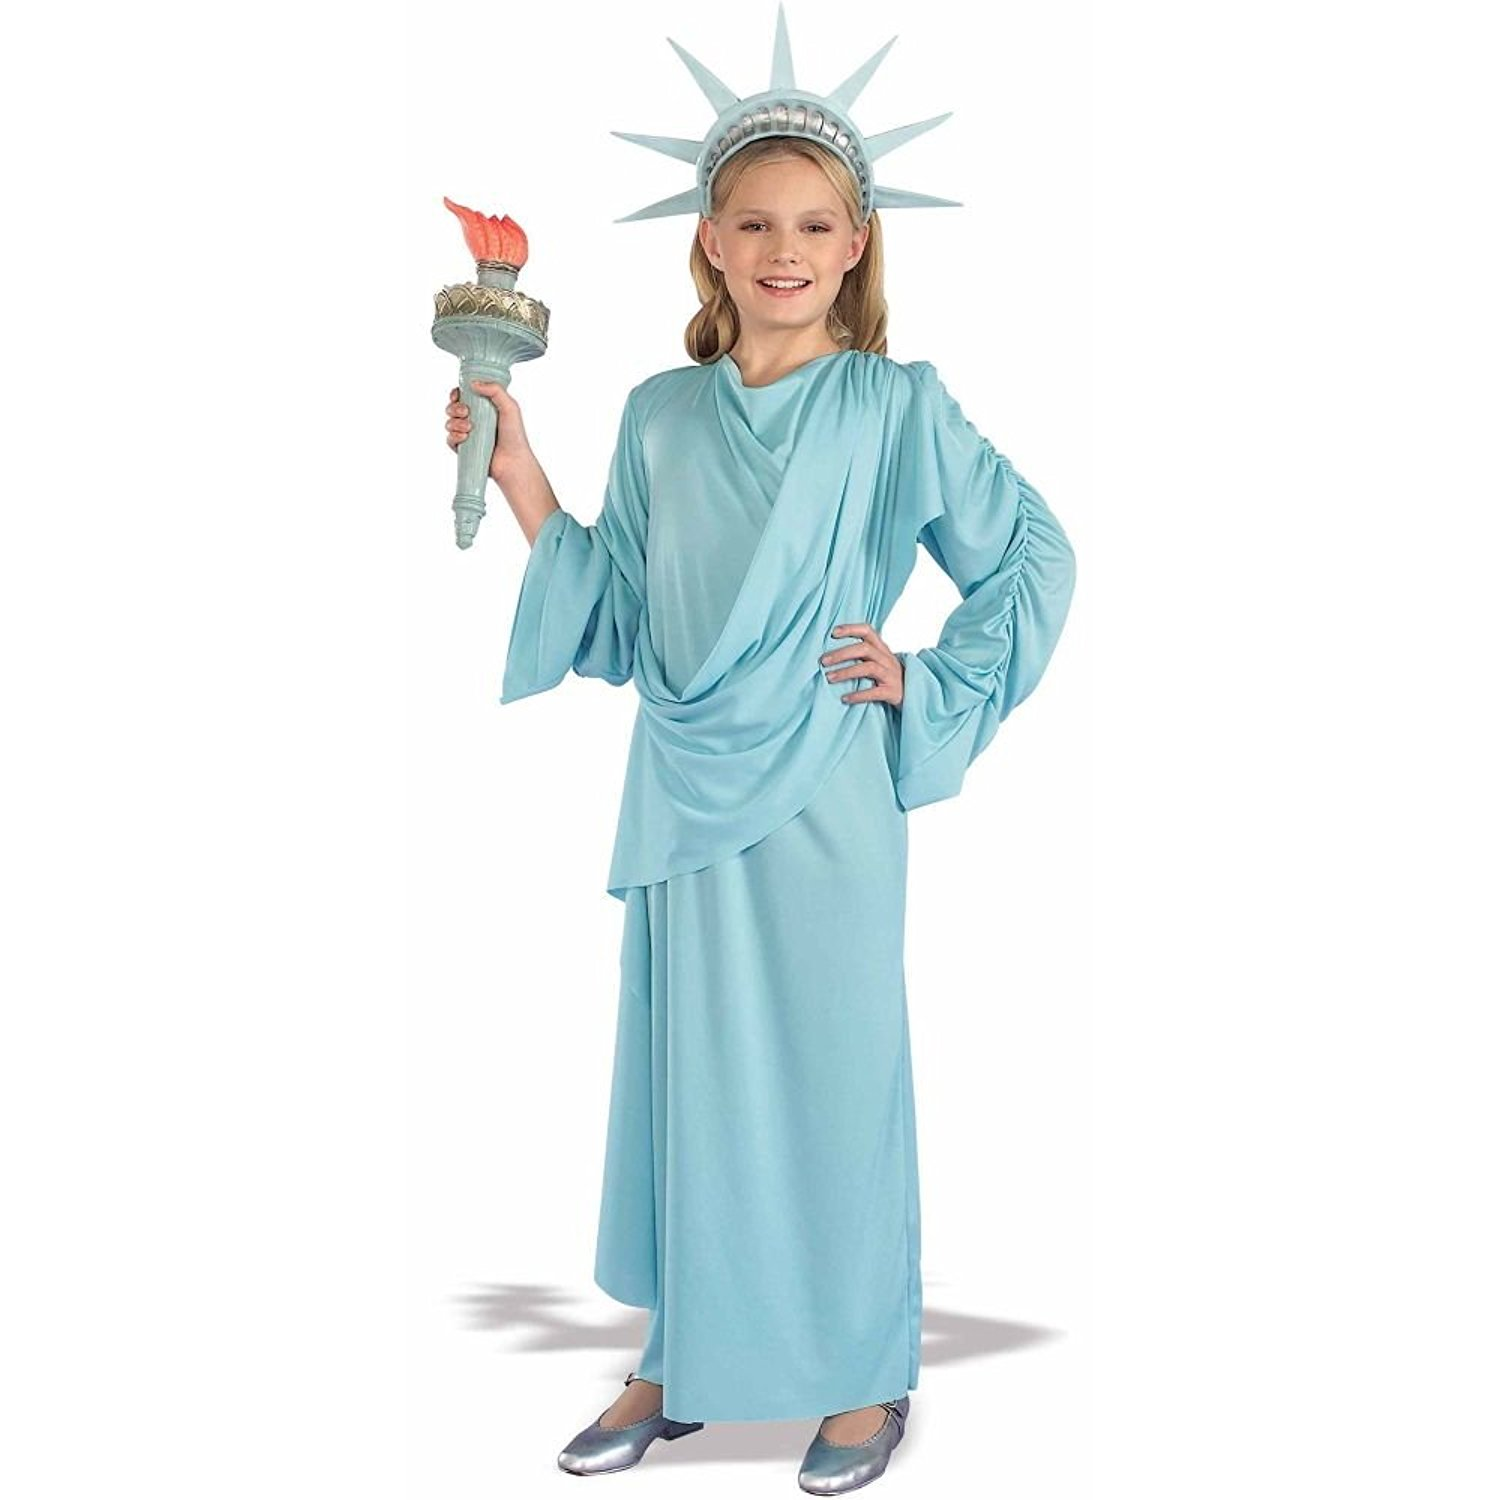 Cheap Liberty Costume, find Liberty Costume deals on line at Alibaba.com